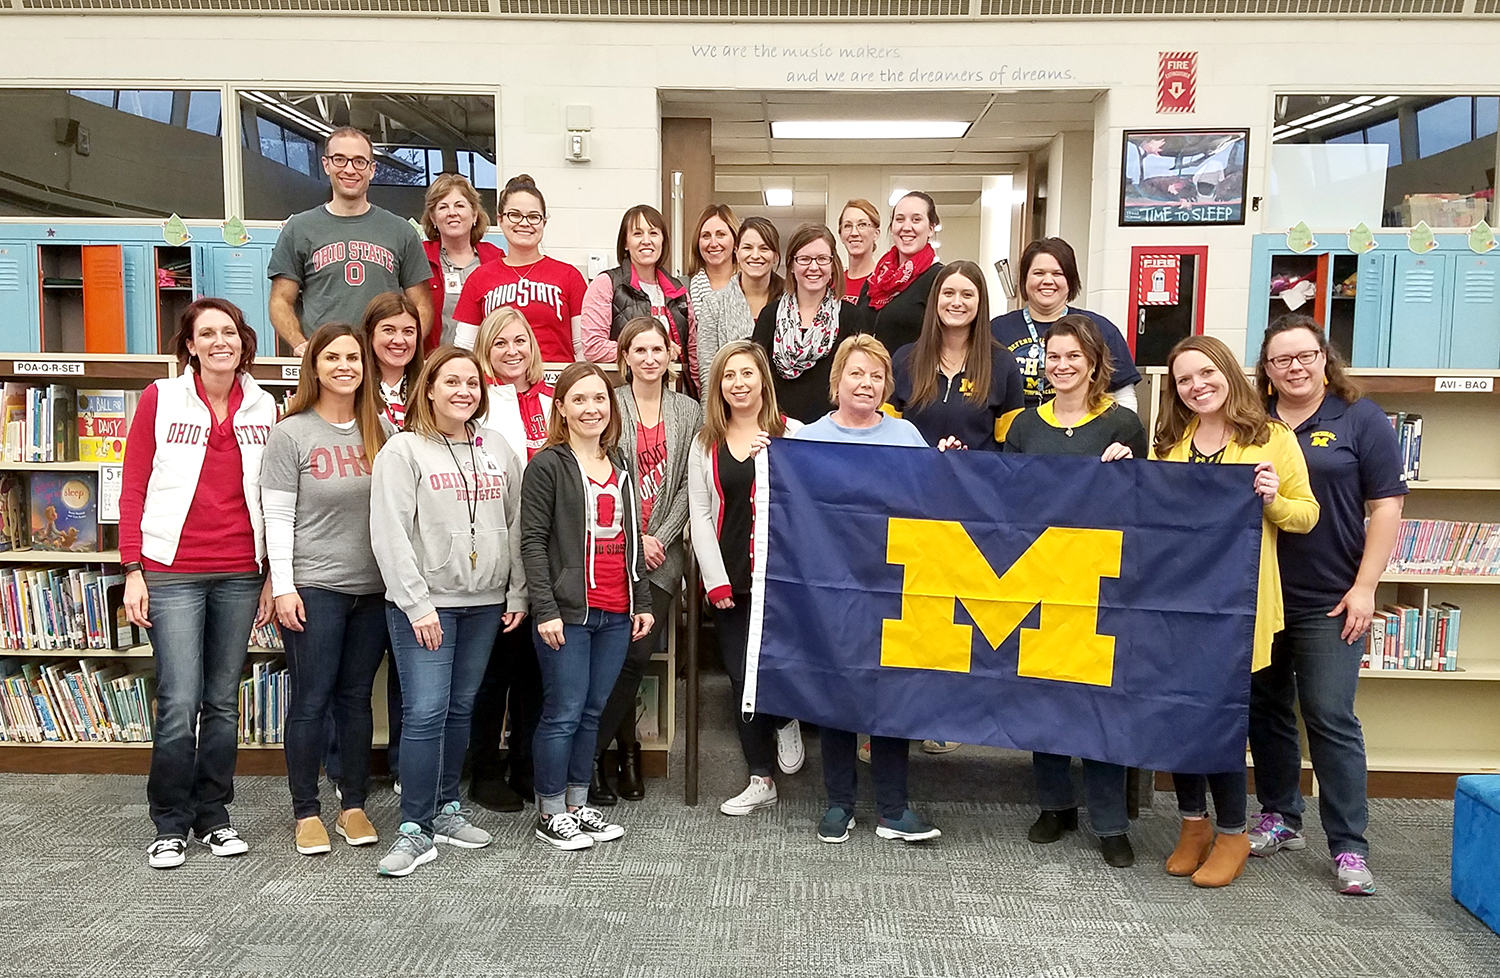 Woodland employees pose for photo in OSU and Michigan colors